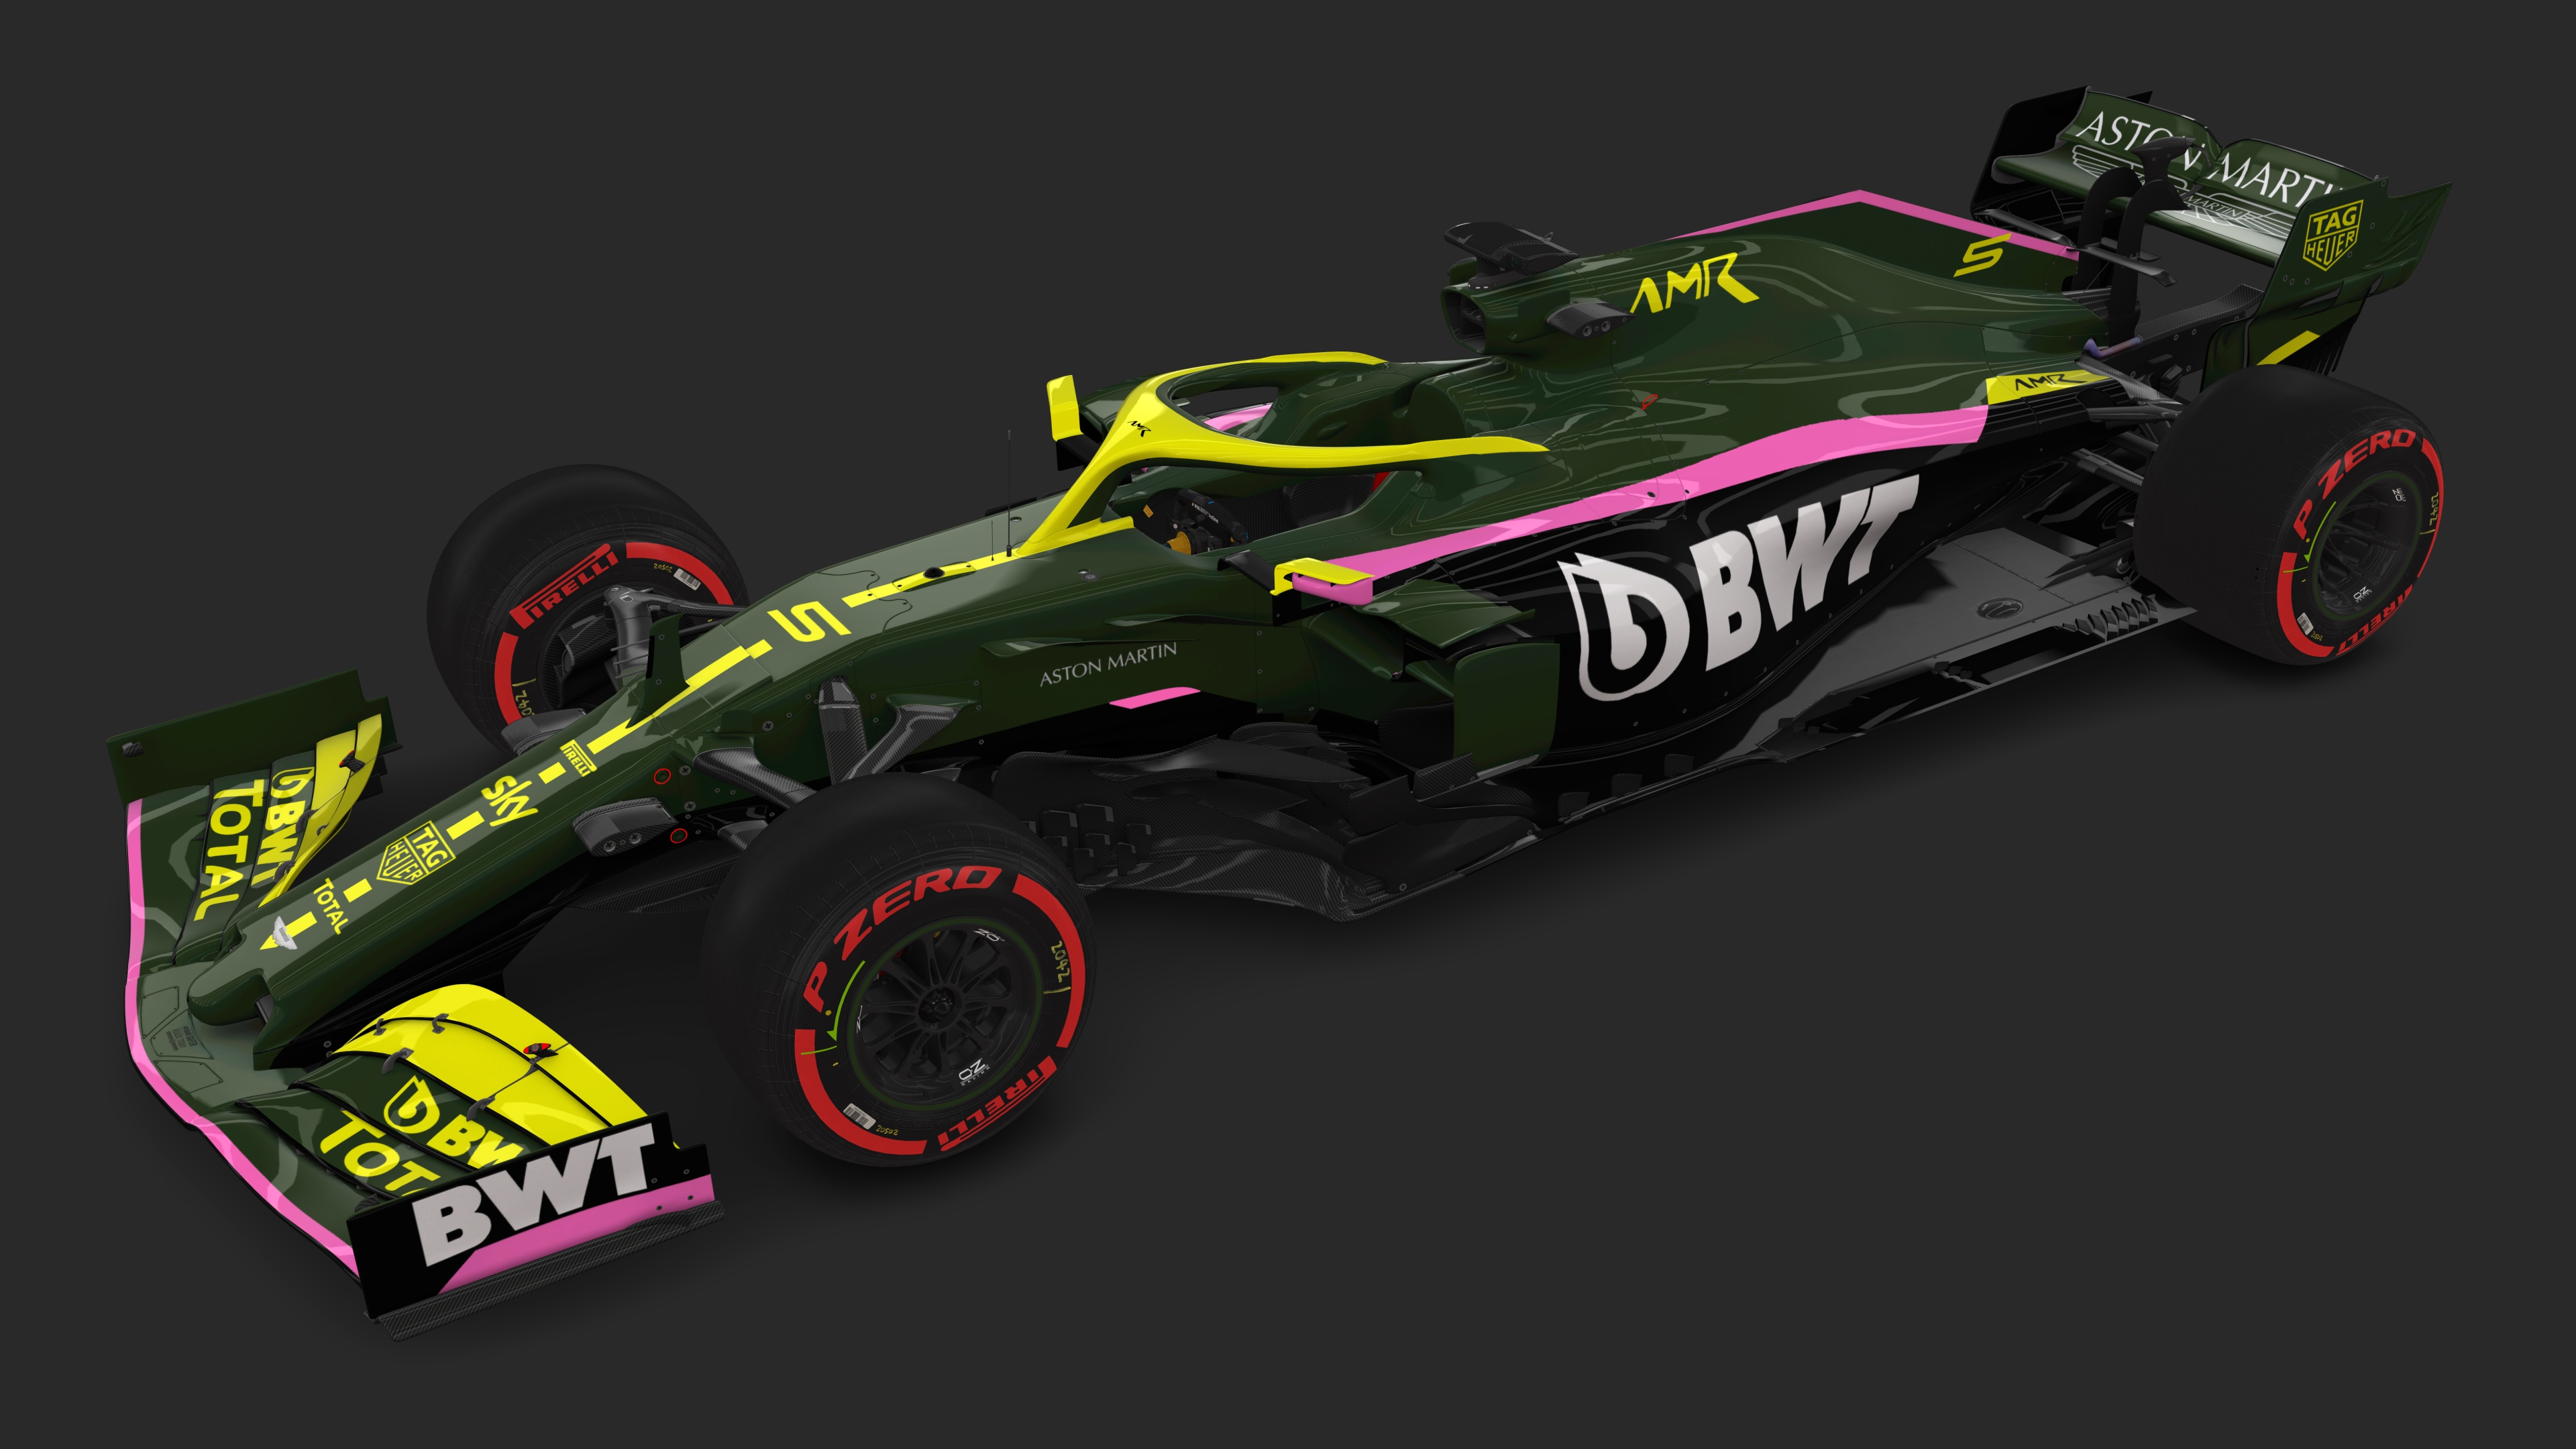 Rss Formula Hybrid 2020 Aston Martin Racing F1 Team Livery Design Concepts For 2021 Racedepartment